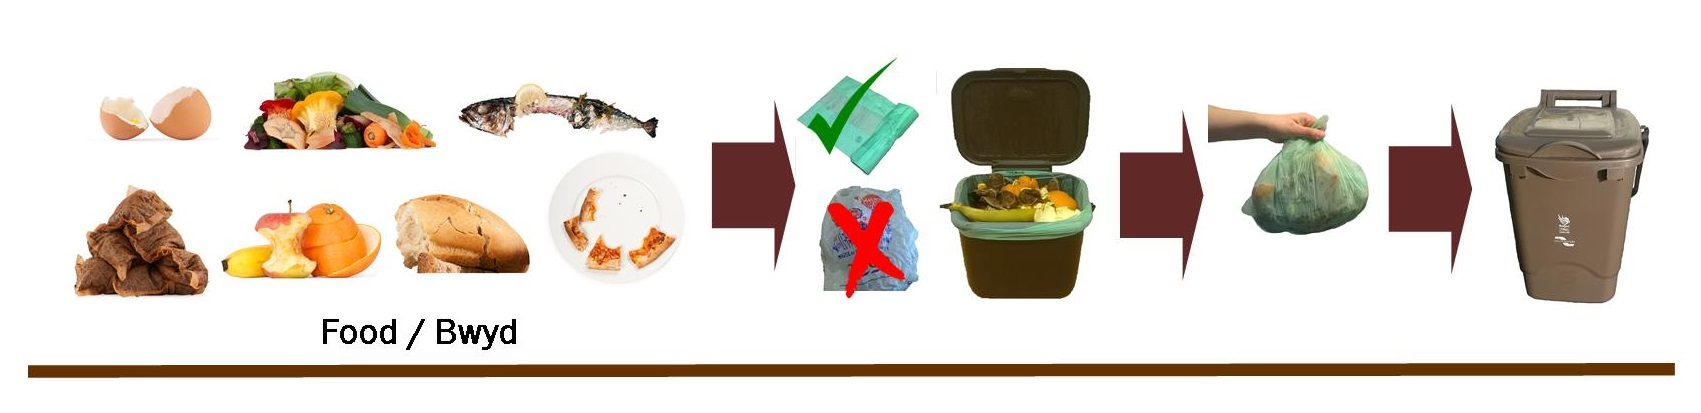 Food box graphic for web